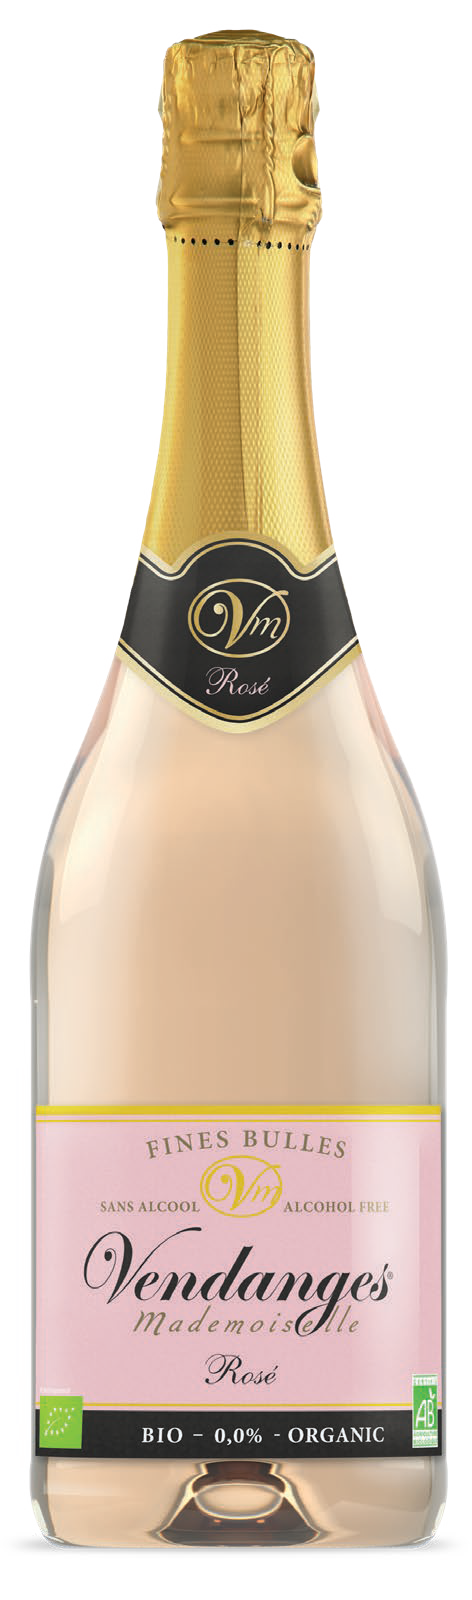 Alcohol free rosé champagne